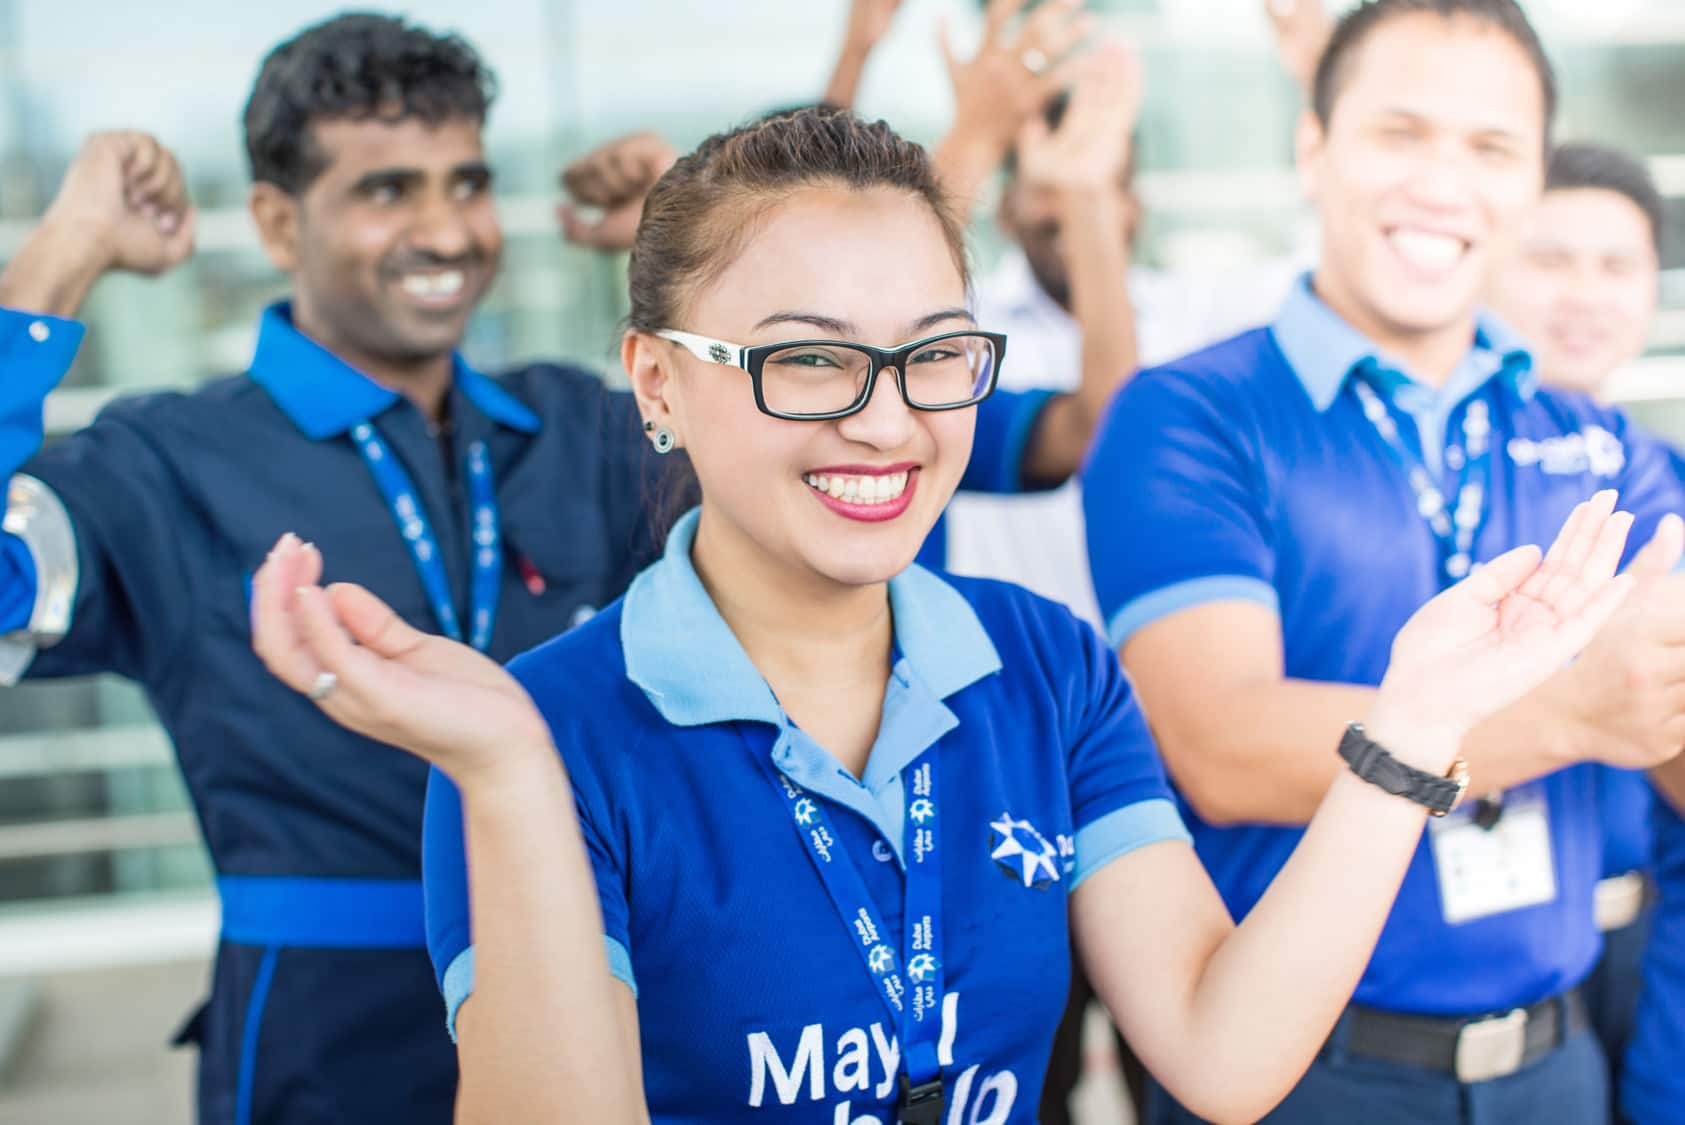 dubai airports hospitality customer experience pilot by engine 03